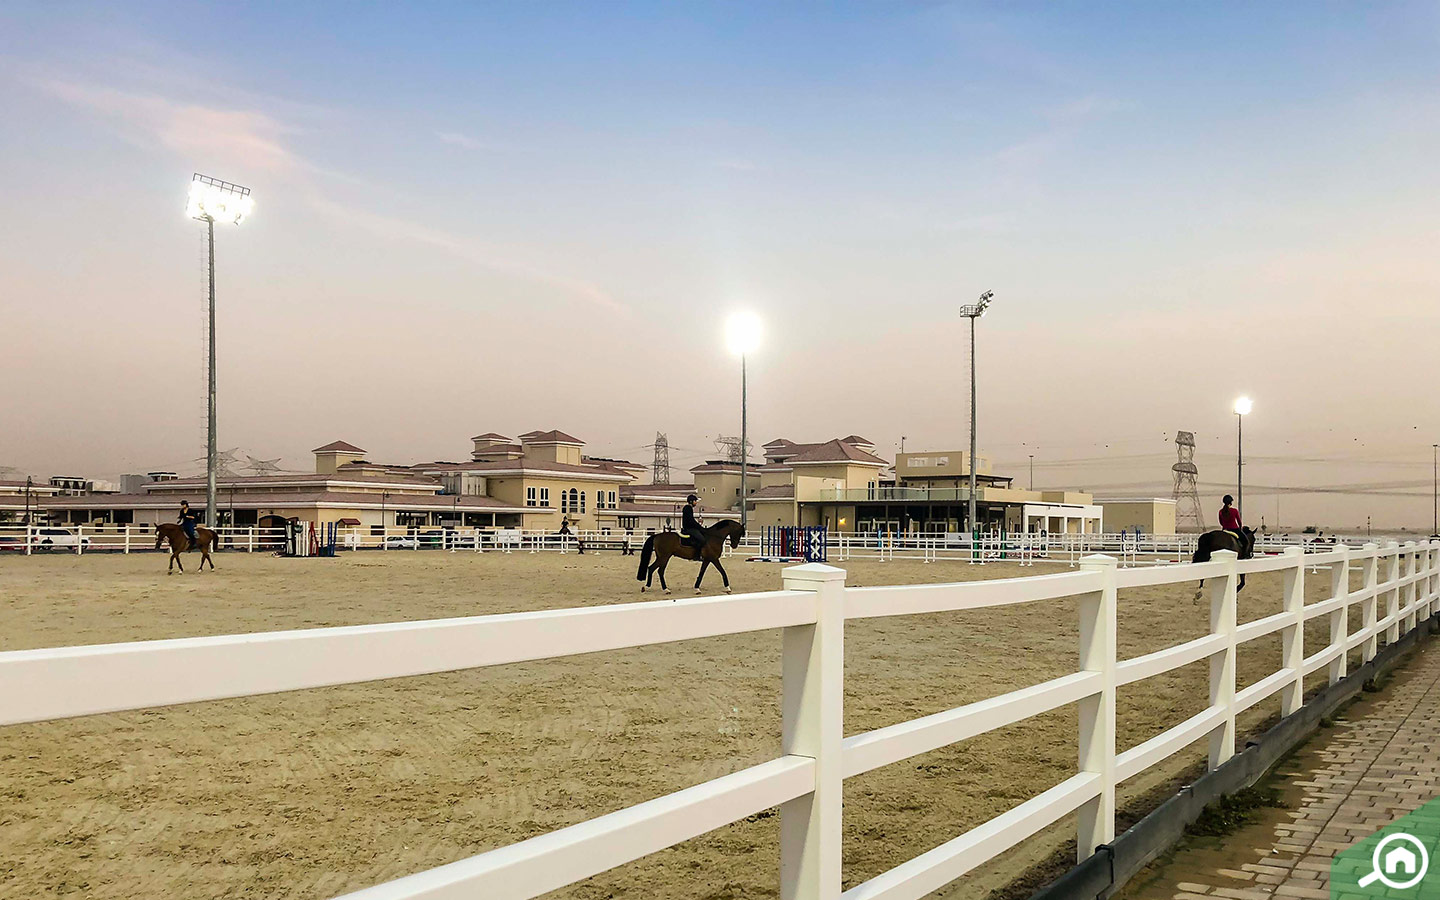 Horse riding in the Al Habtoor Polo Resort and Club.